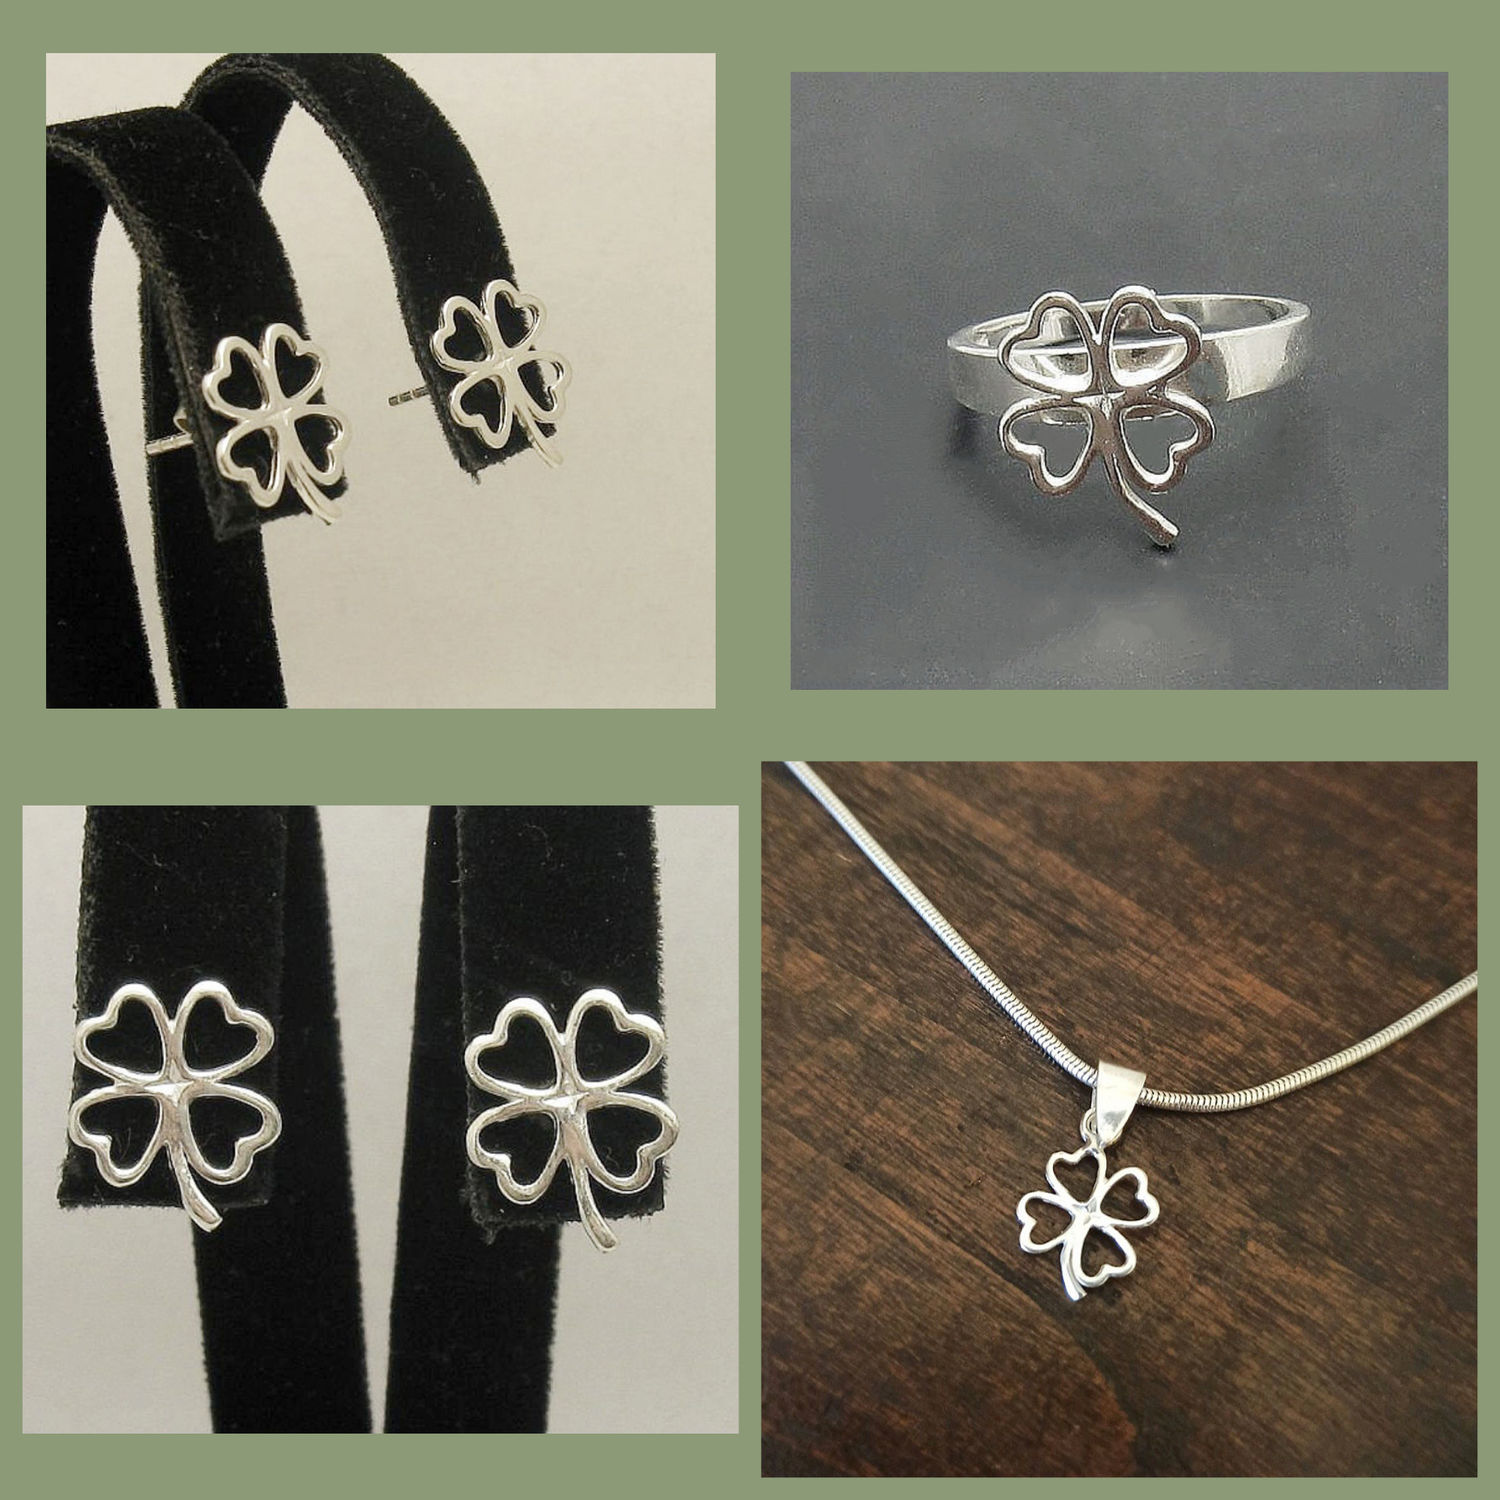 Silver clover pendant. Clover Ring and earrings. A necklace for good luck, Pendant, Turin,  Фото №1